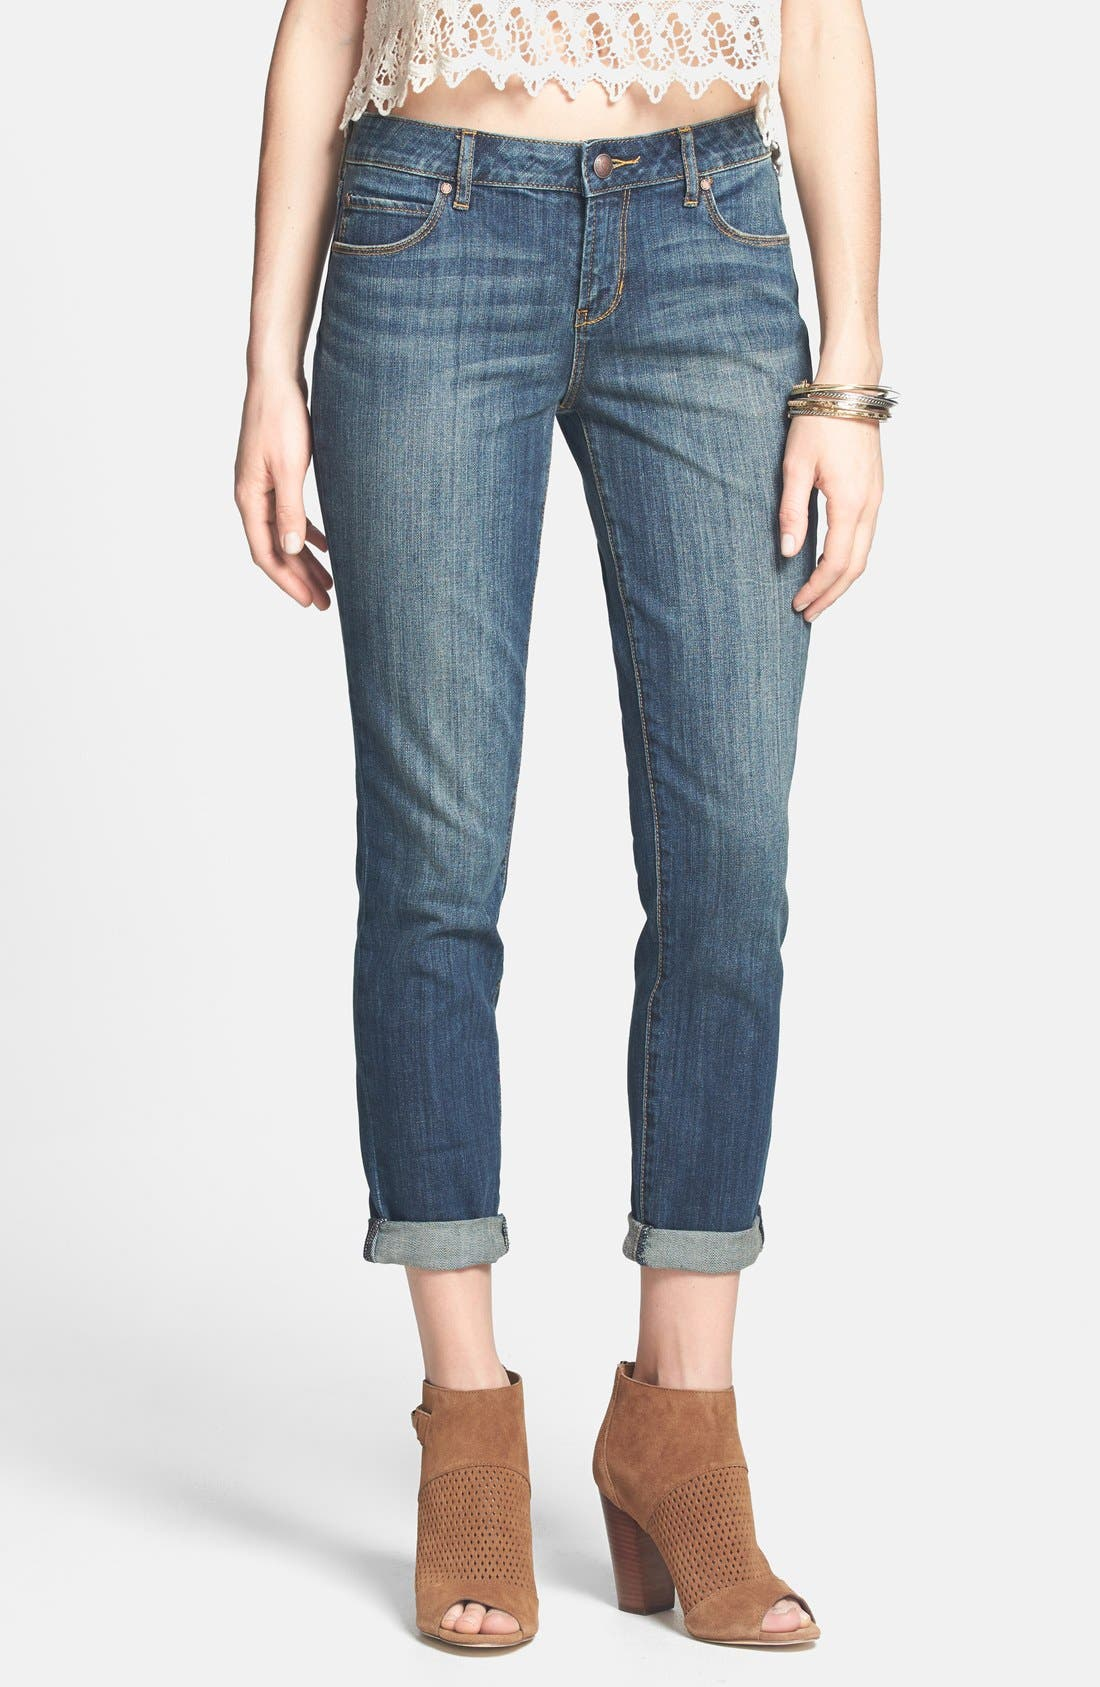 Main Image - Articles of Society 'Cindy - Girlfriend' Relaxed Crop Jeans (Medium Wash) (Juniors)